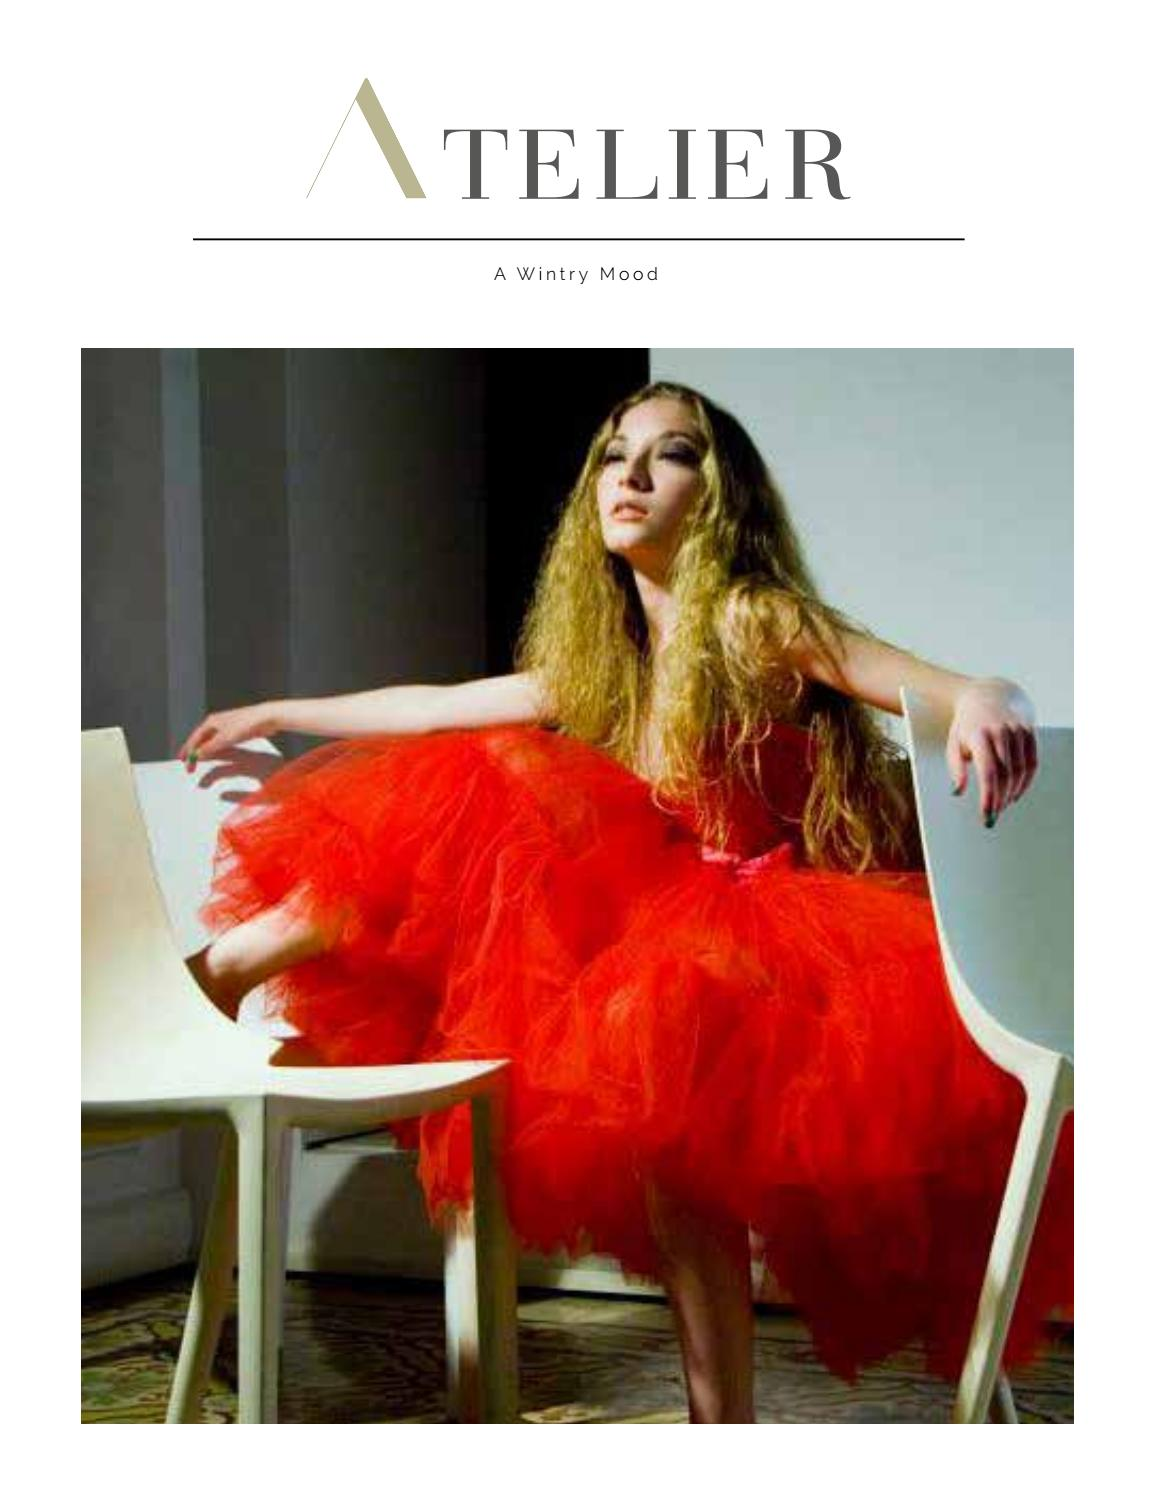 Atelier (Issue 02) by Union Print - issuu